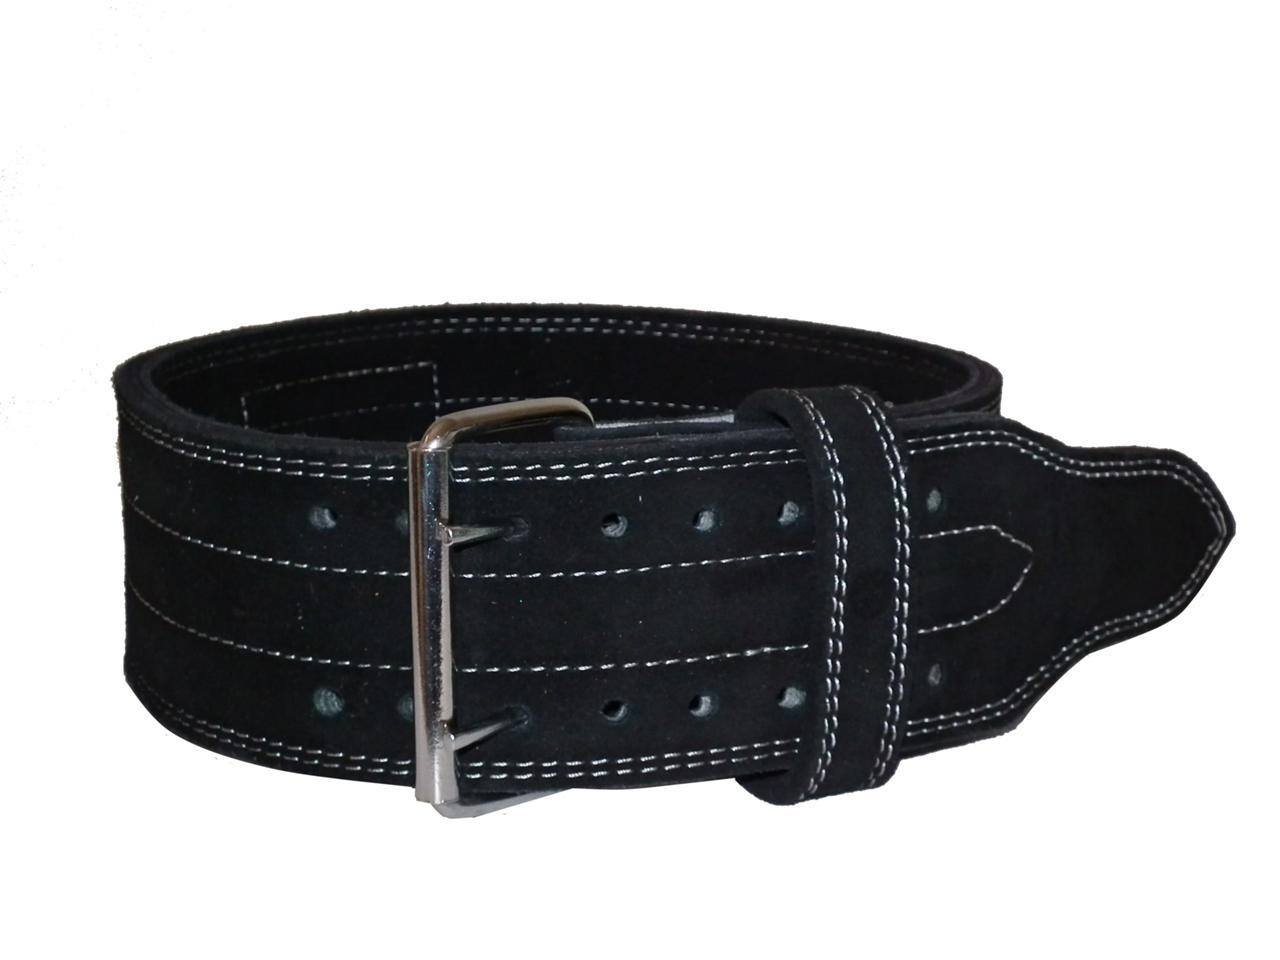 UNLEASHED-WEIGHT-LIFTING-POWER-BELT-WEIGHTLIFTING-BODYBUILDING-GYM-BACK-SUPPORT